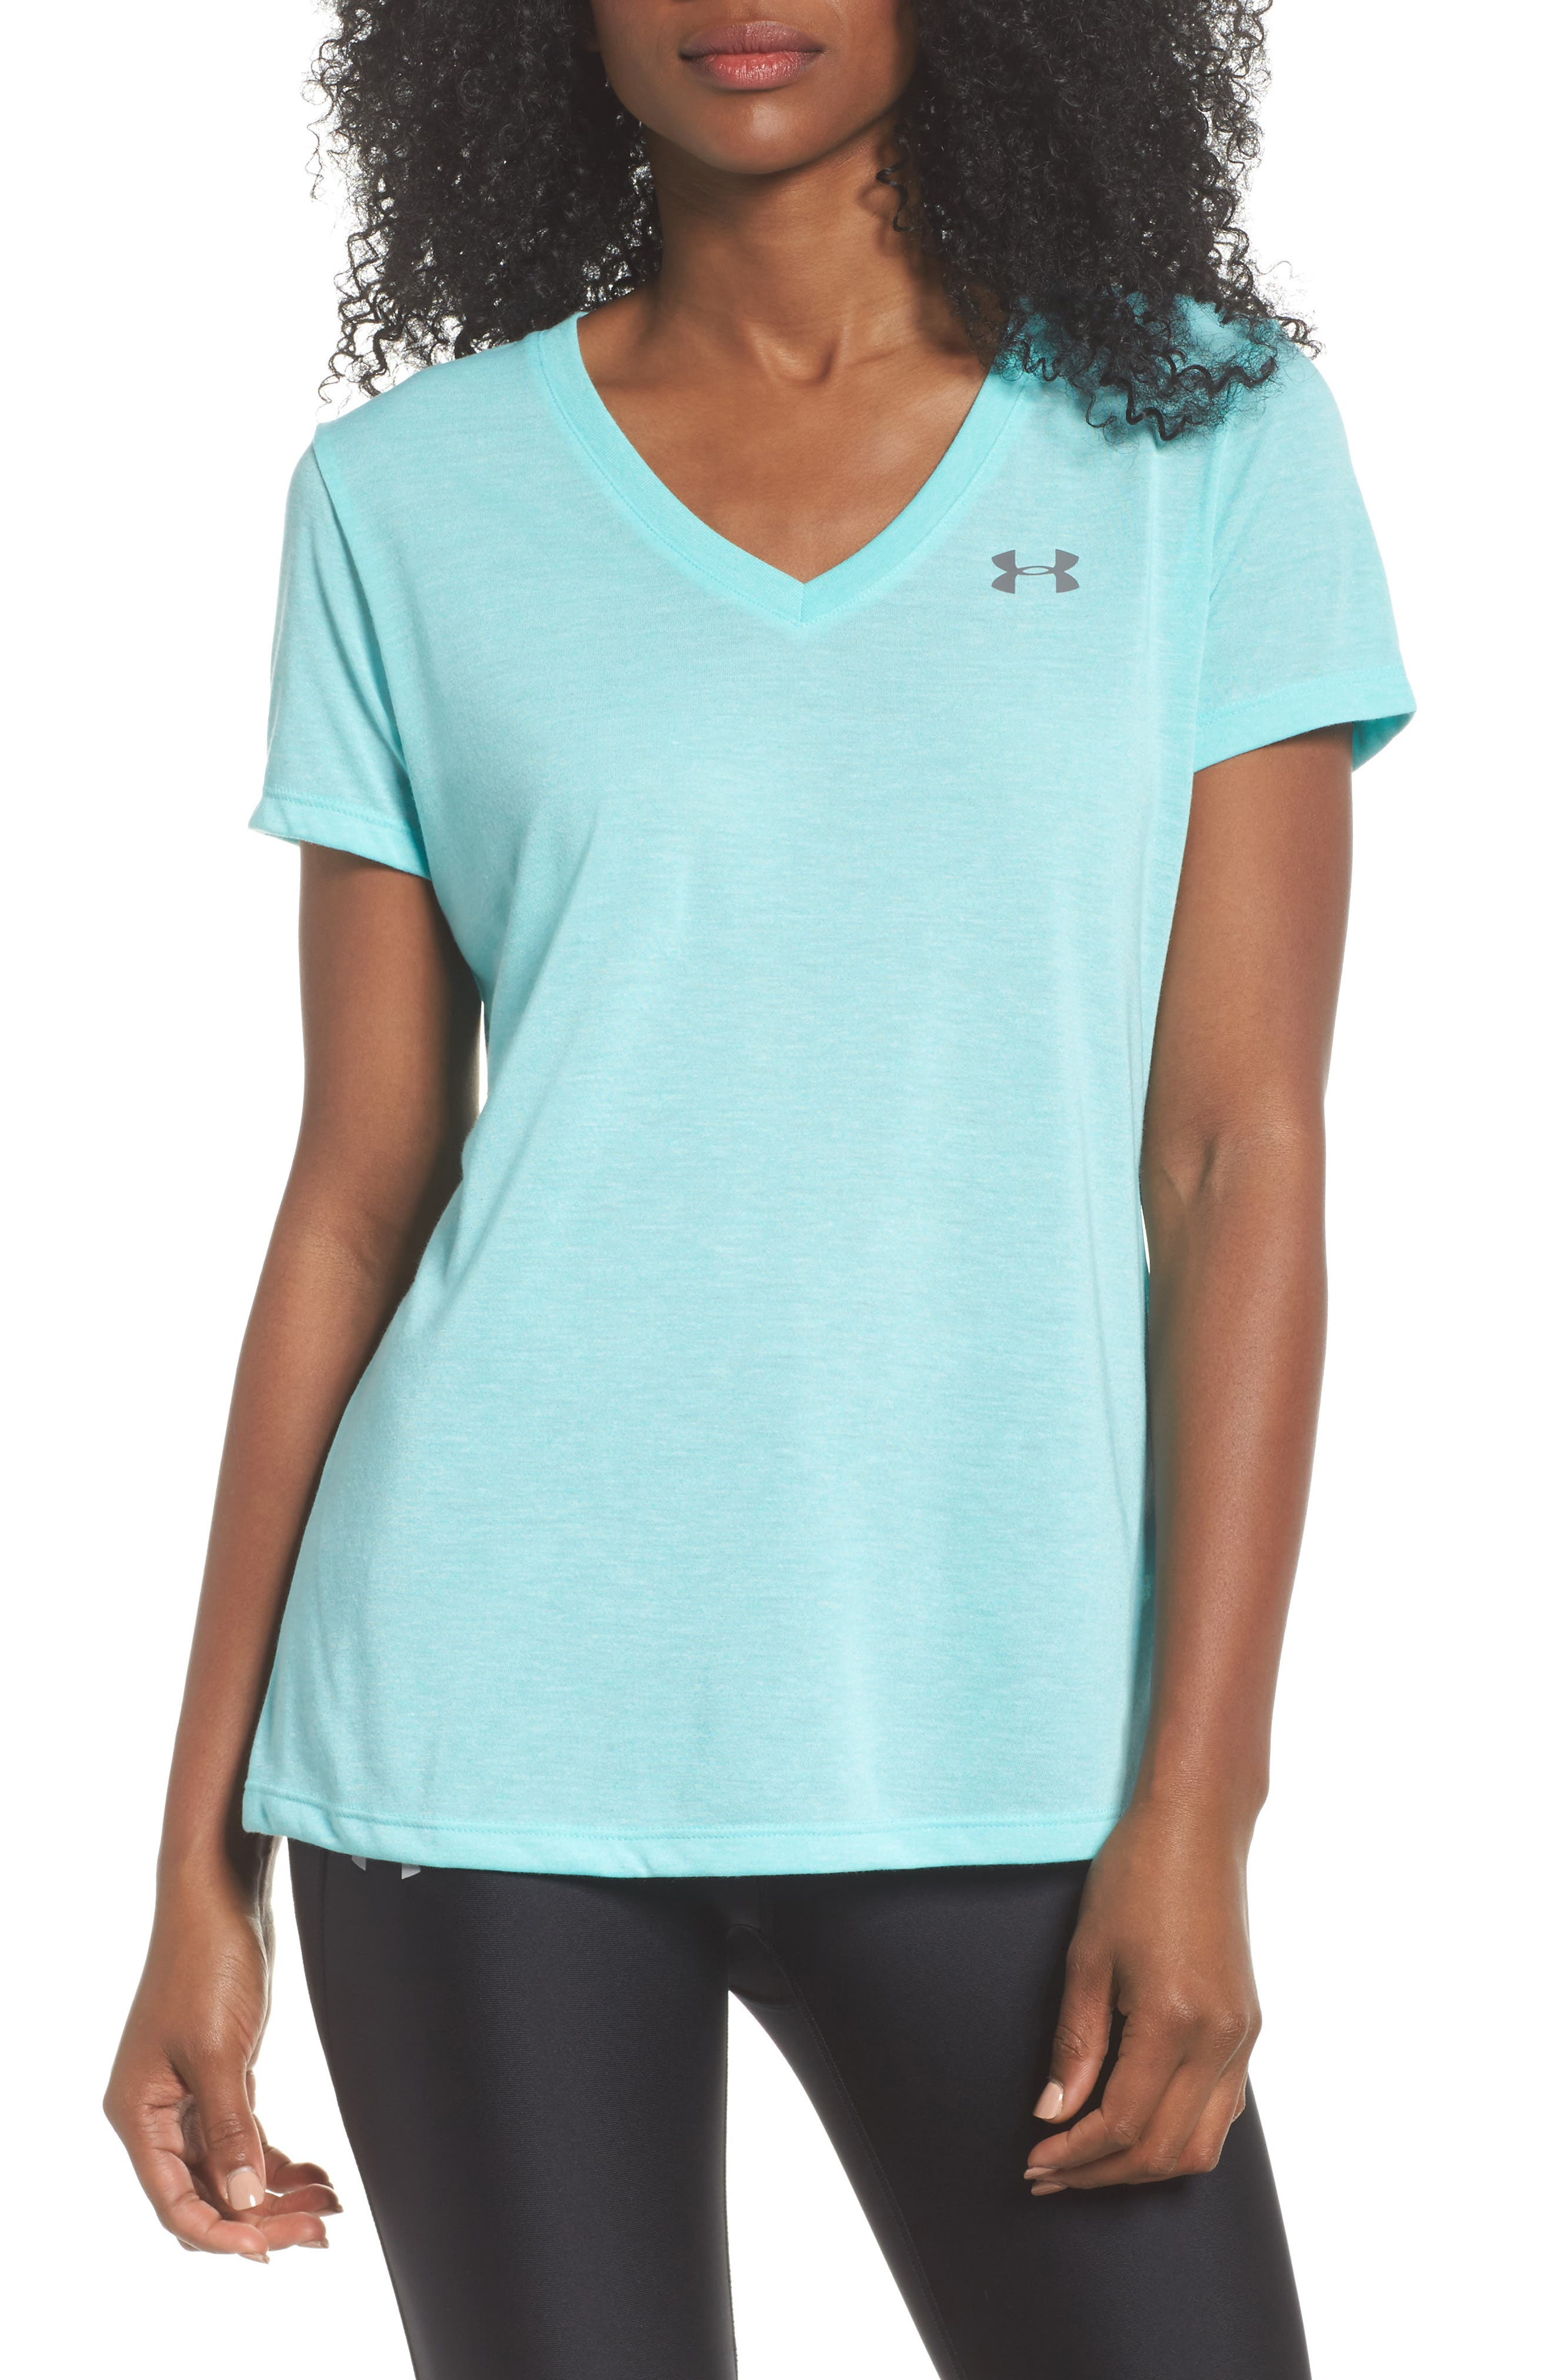 Alternate Image 1 Selected - Under Armour Twist Tee